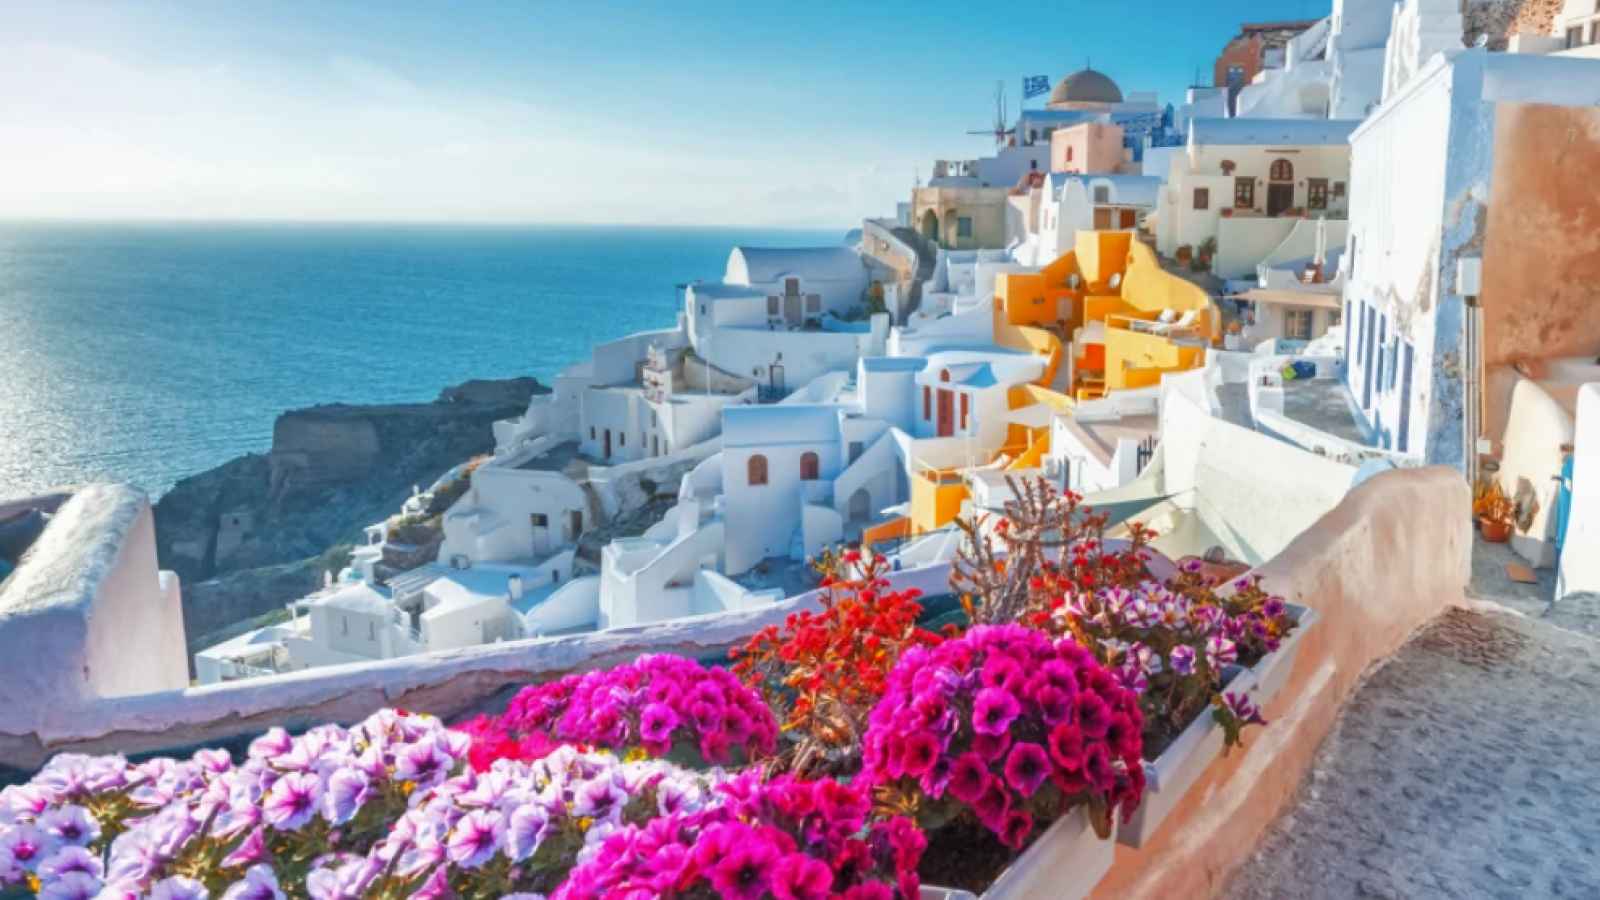 Qatar Airways Holidays launches a seven night Greek Island-hopping experience